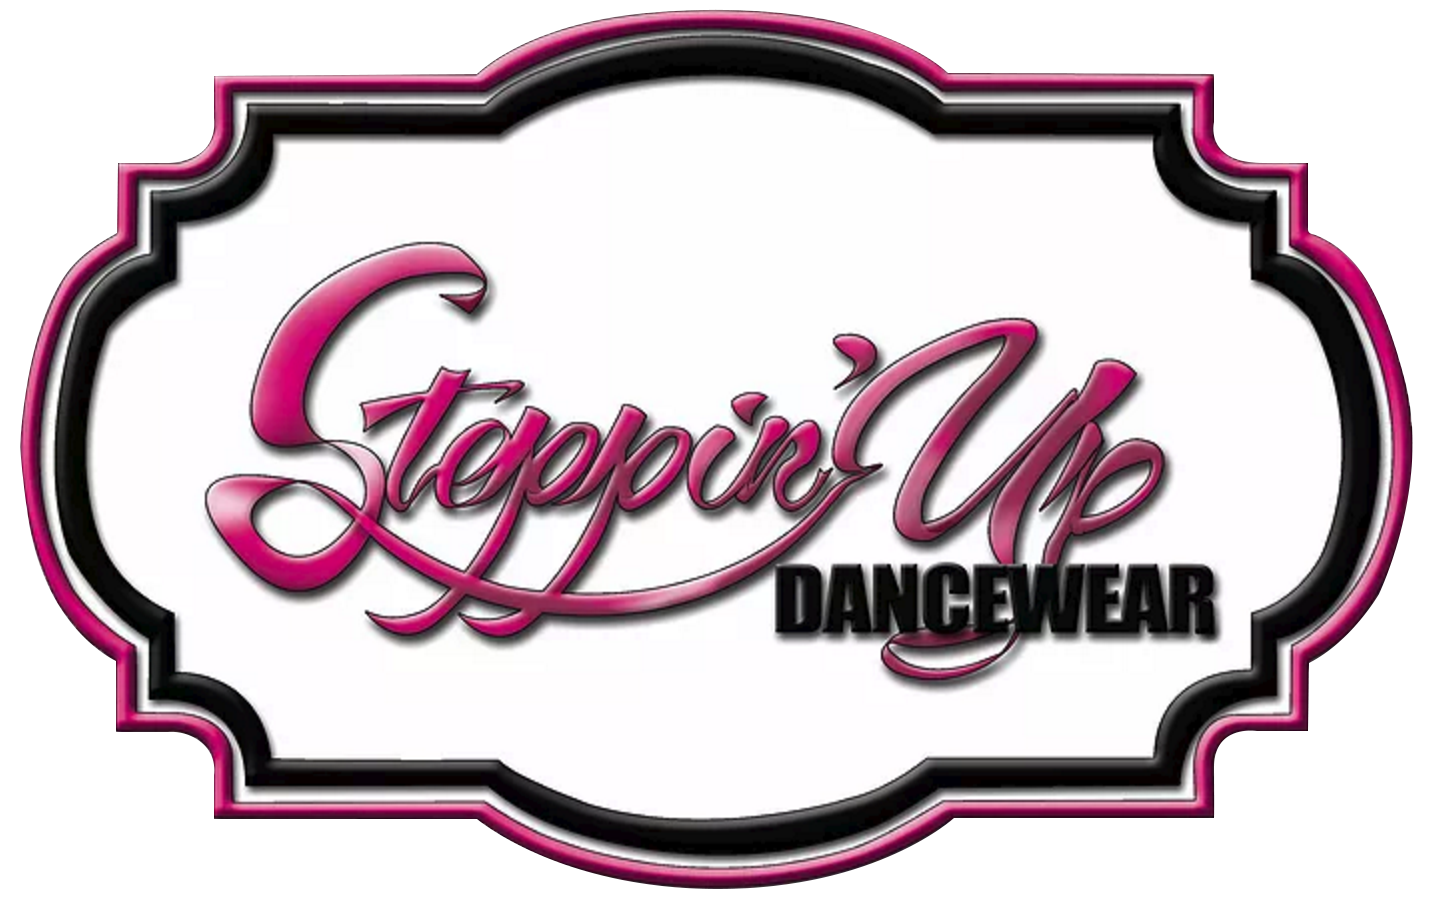 Steppin' Up Dancewear logo